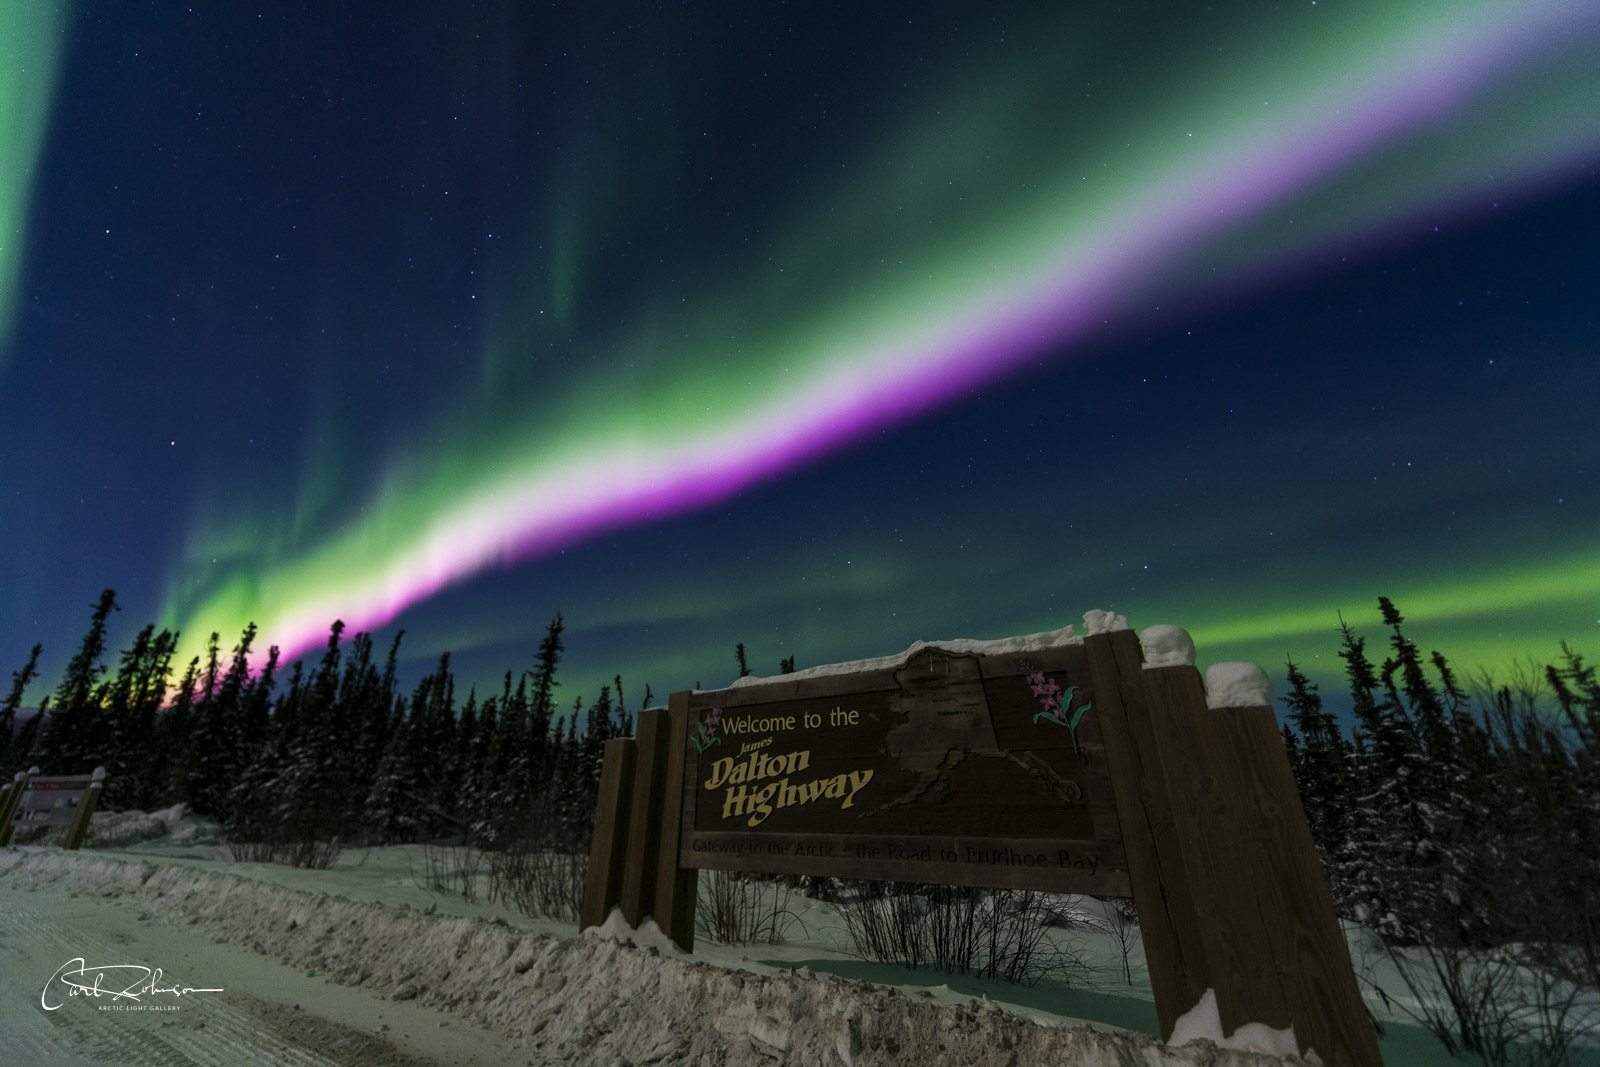 An active aurora borealis display with a strong pink line dances over the Dalton Highway sign.